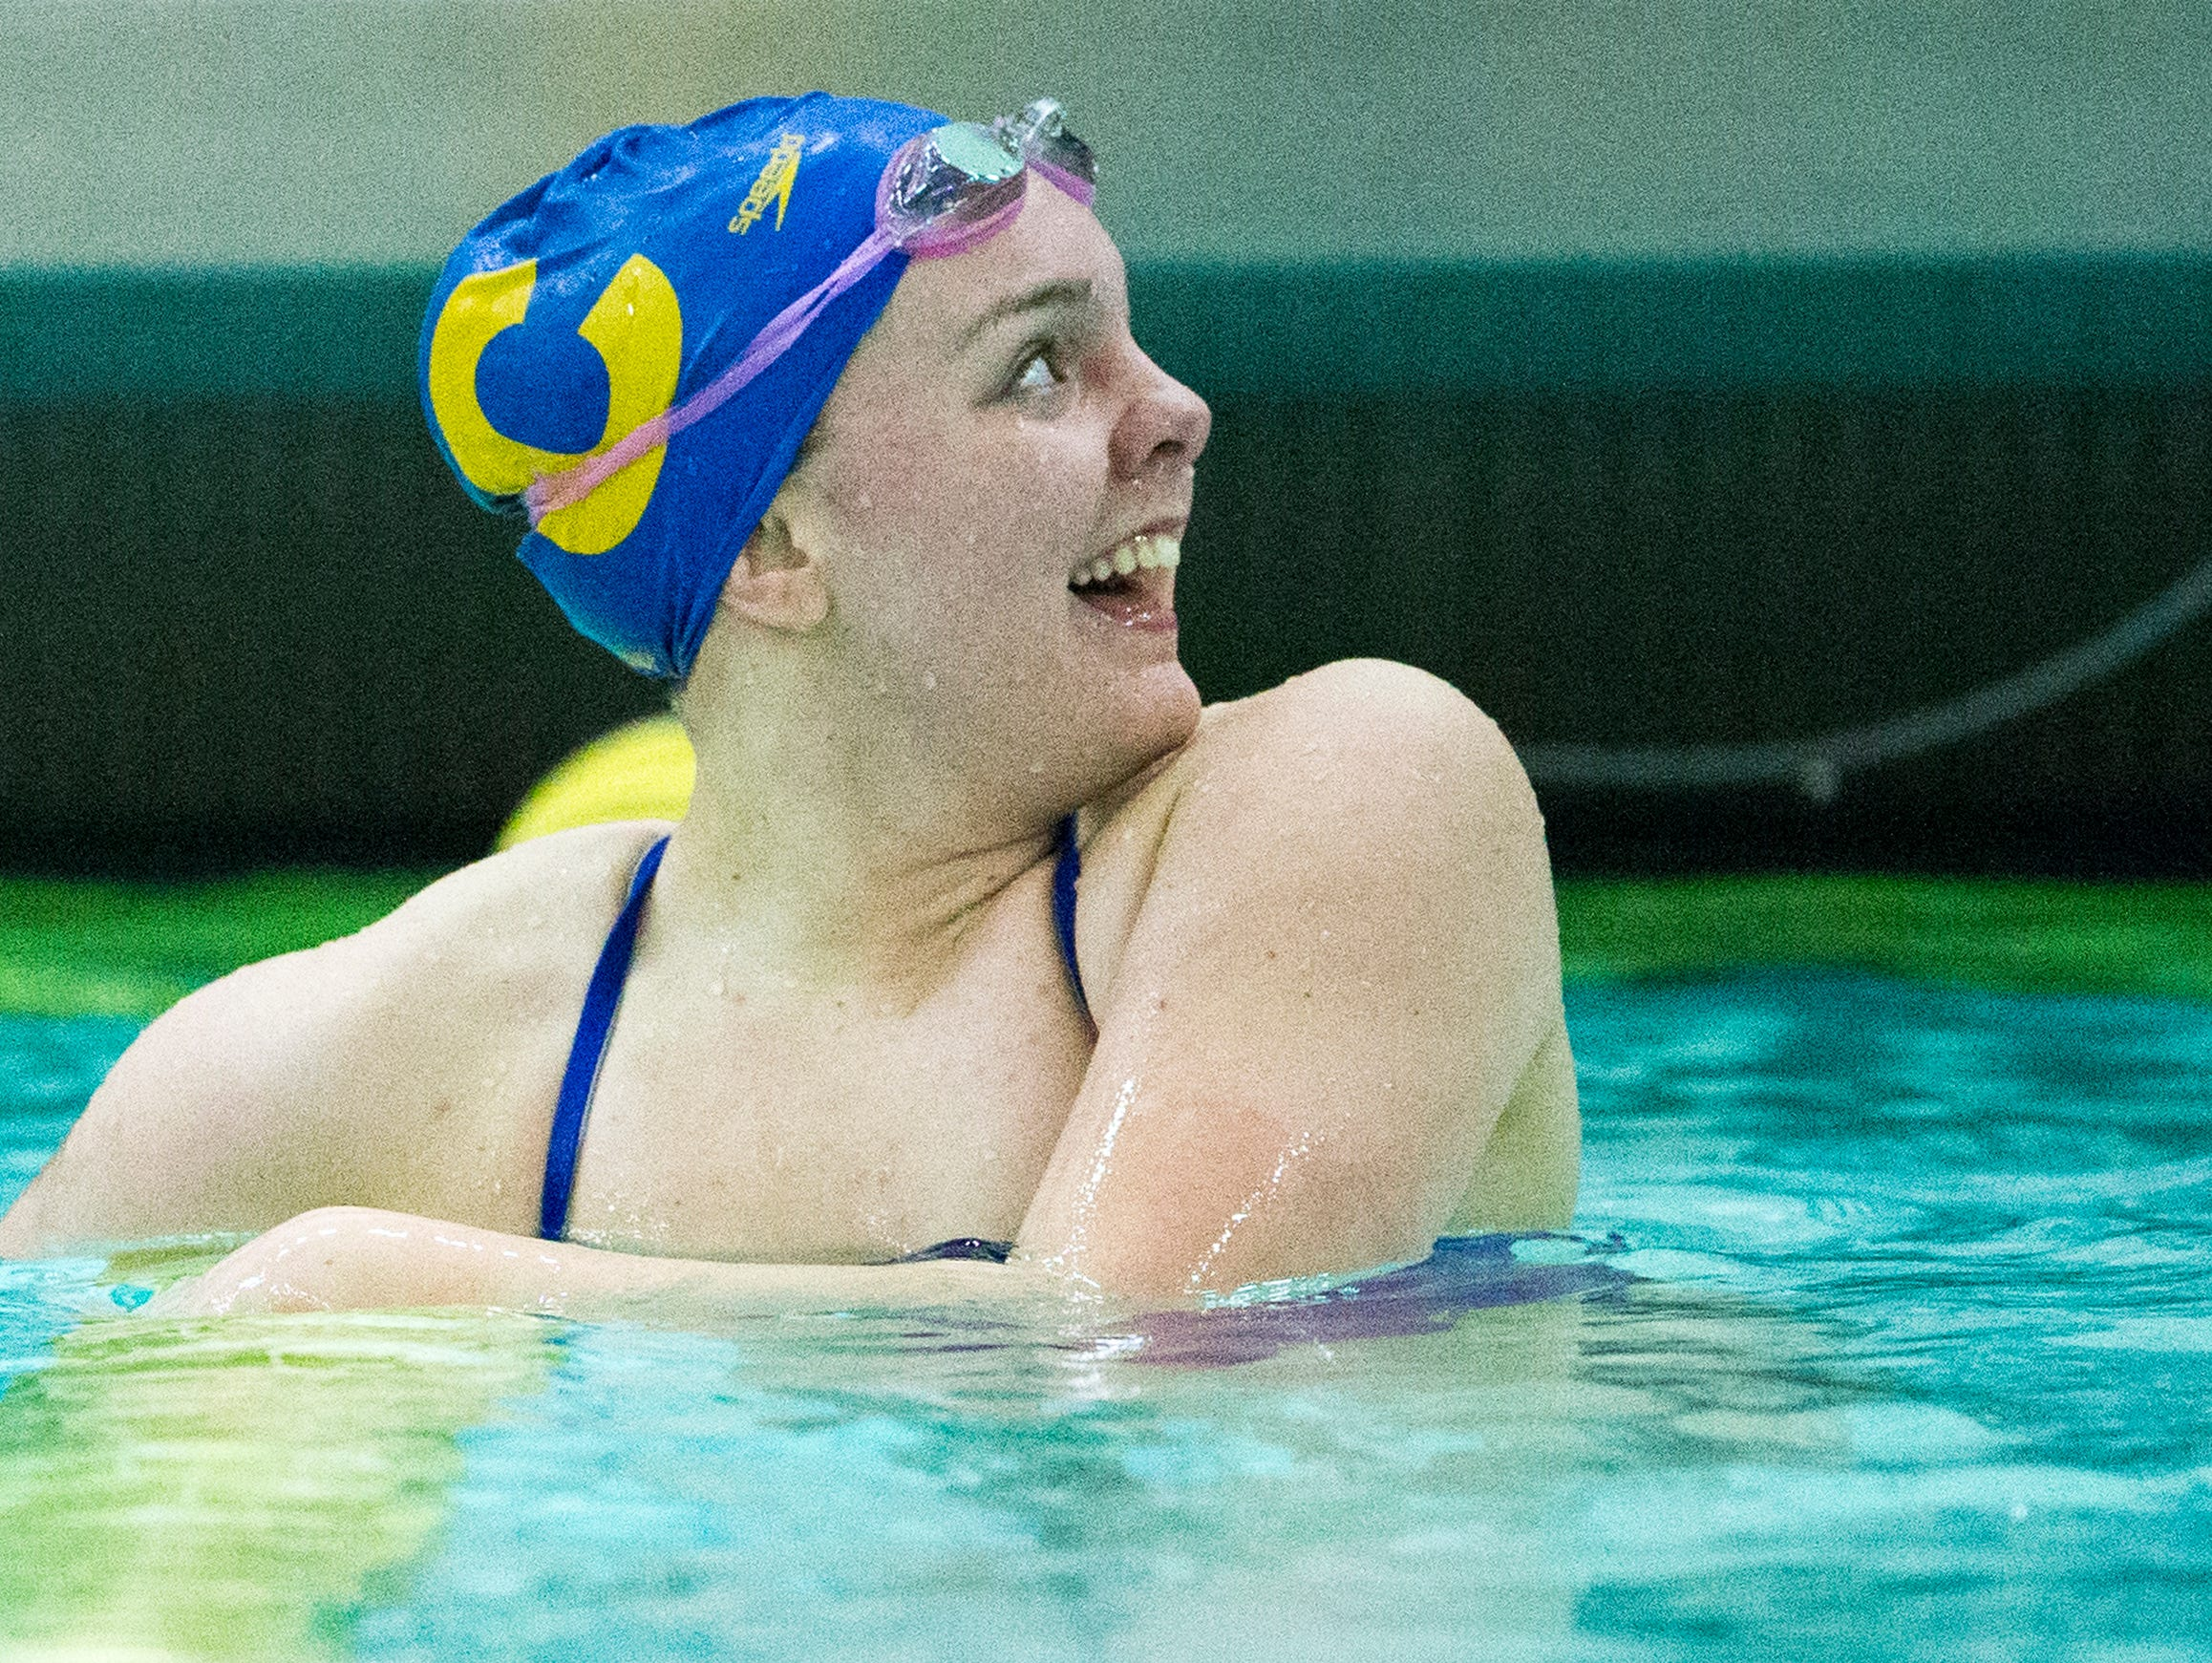 Carmel High School's Sammie Burchill reacts after winning the 200 yard IM at Saturday's girls swimming and diving sectional at Noblesville High School.